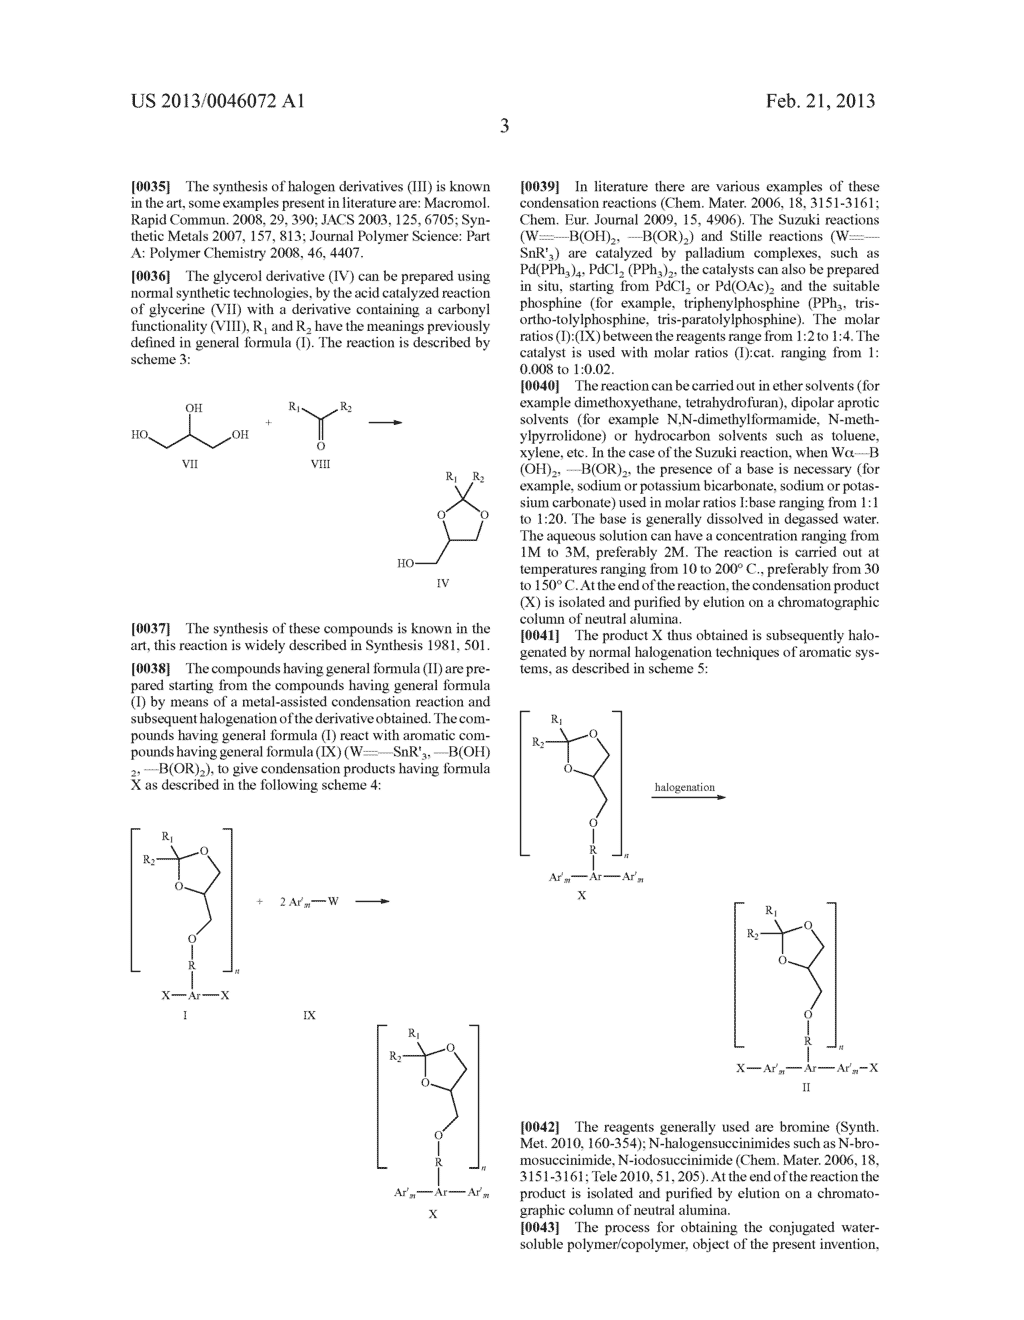 AROMATIC MONOMERS DERIVING FROM GLYCEROL UNITS, PROCESS FOR THEIR     PREPARATION AND USE THEREOF FOR THE PREPARATION OF WATER-SOLUBLE     CONJUGATED POLYMERS - diagram, schematic, and image 04